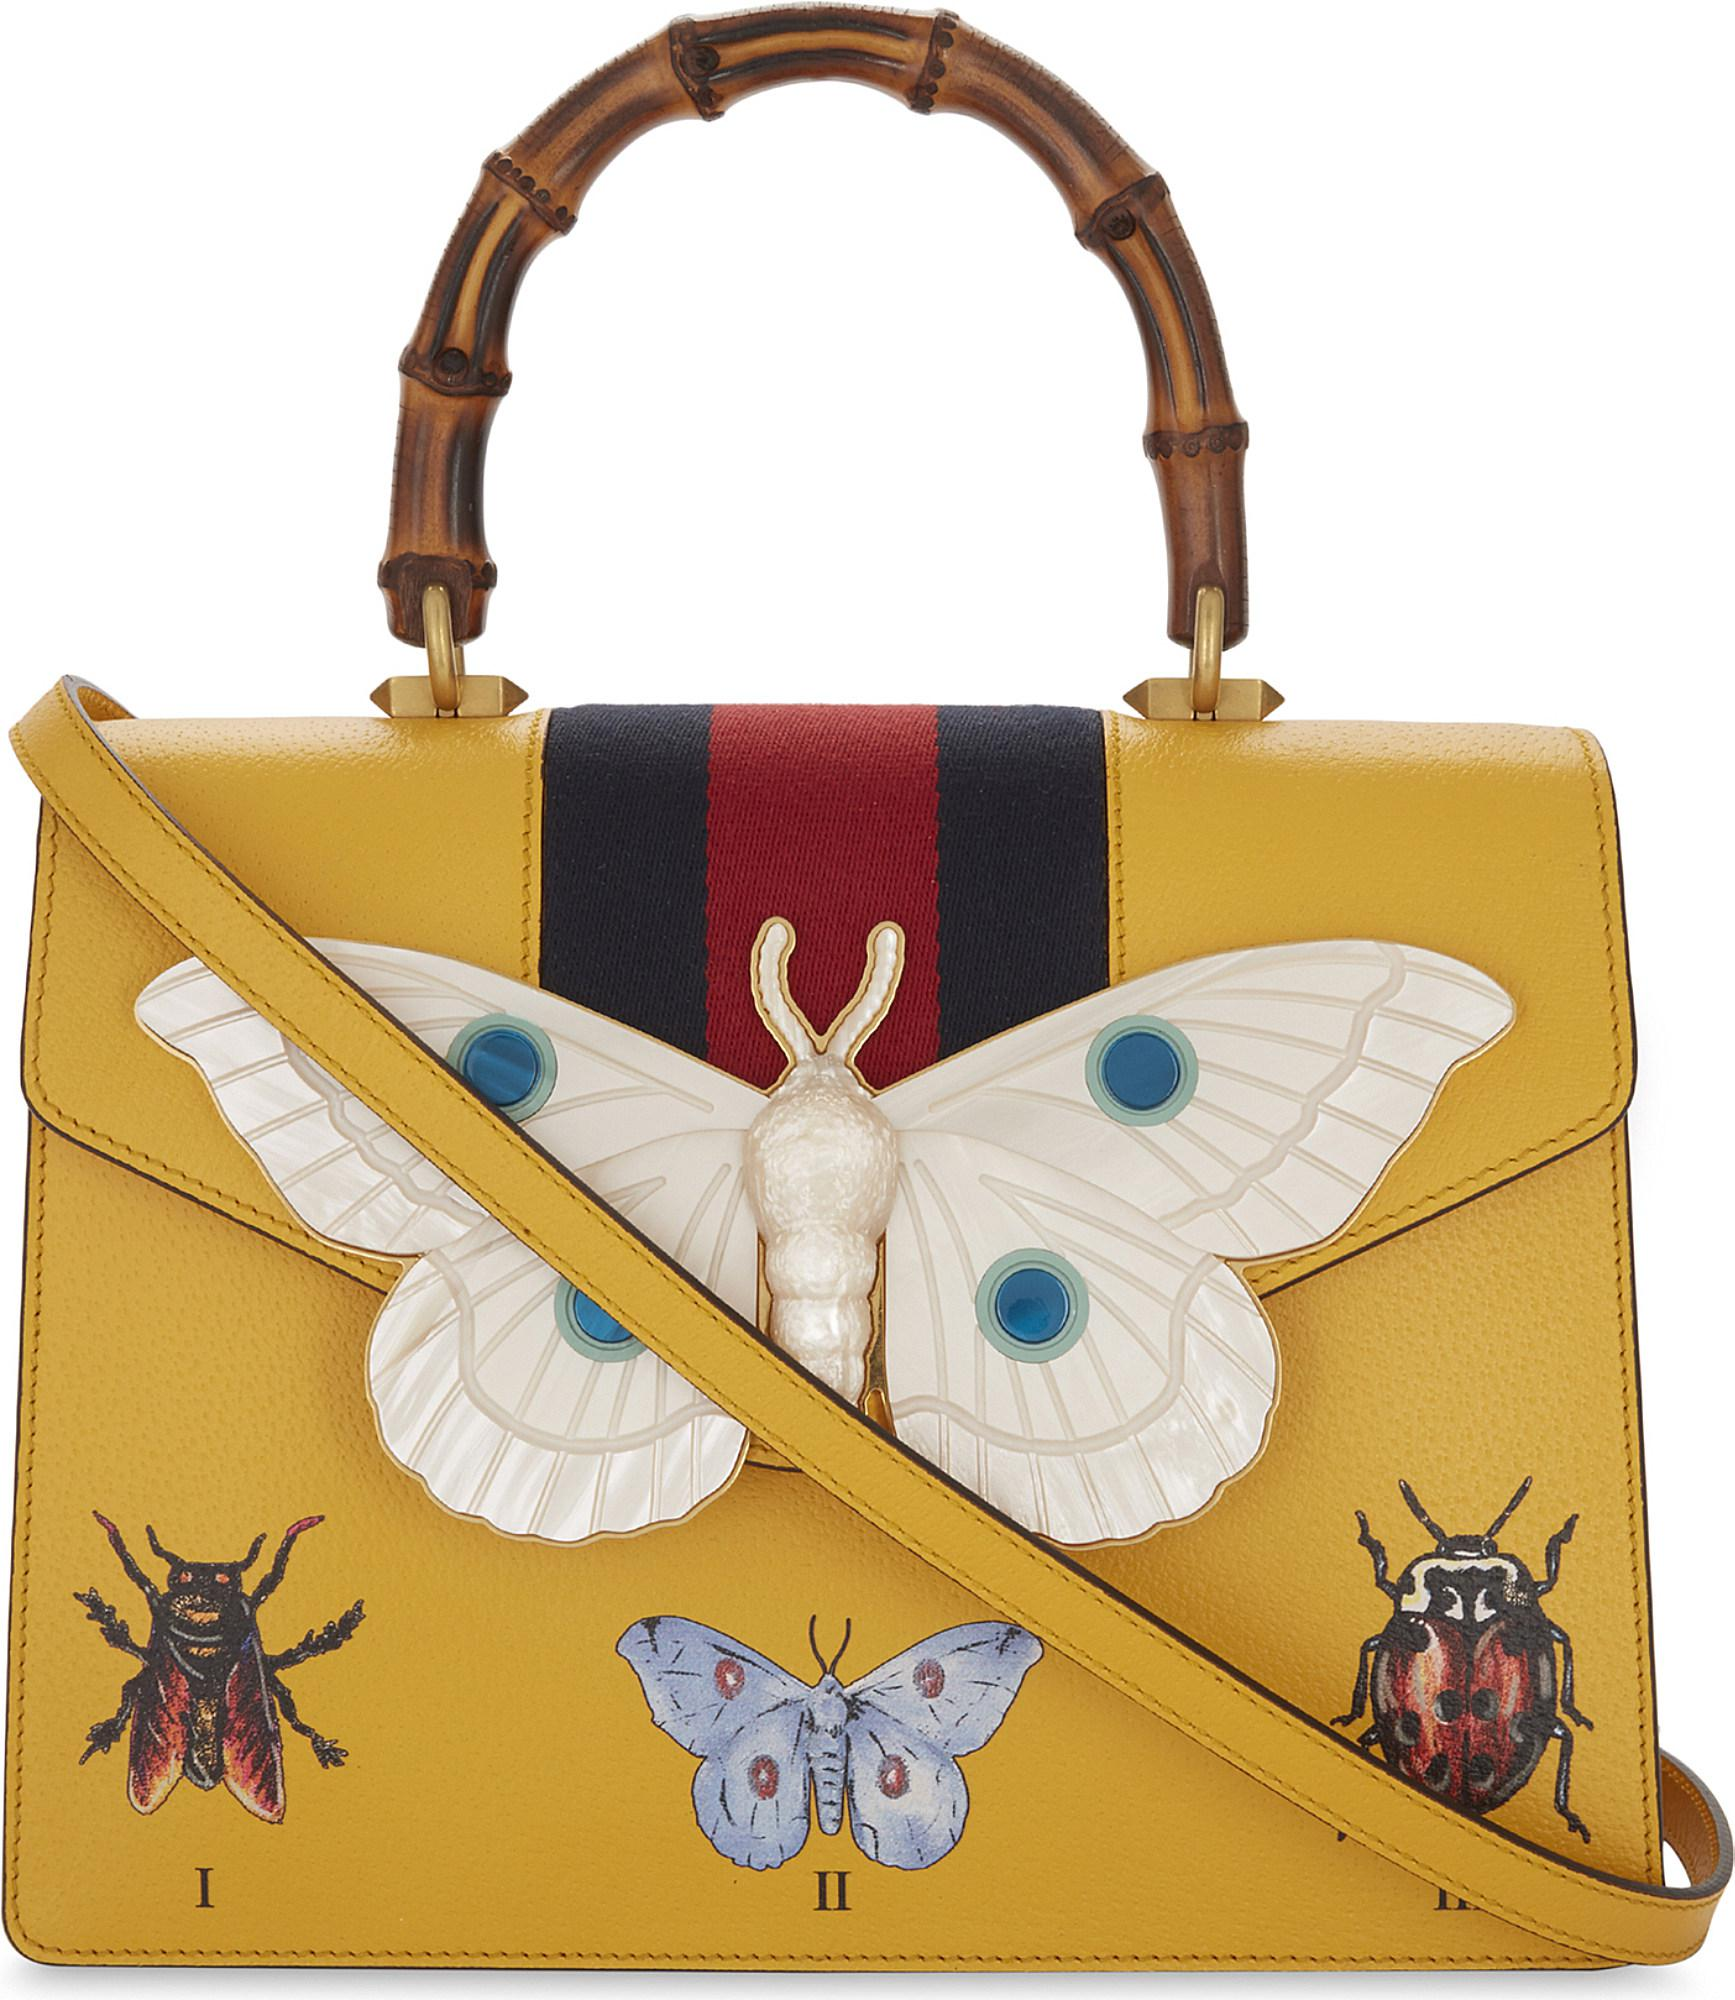 Moth Grained Leather Top Handle Bag